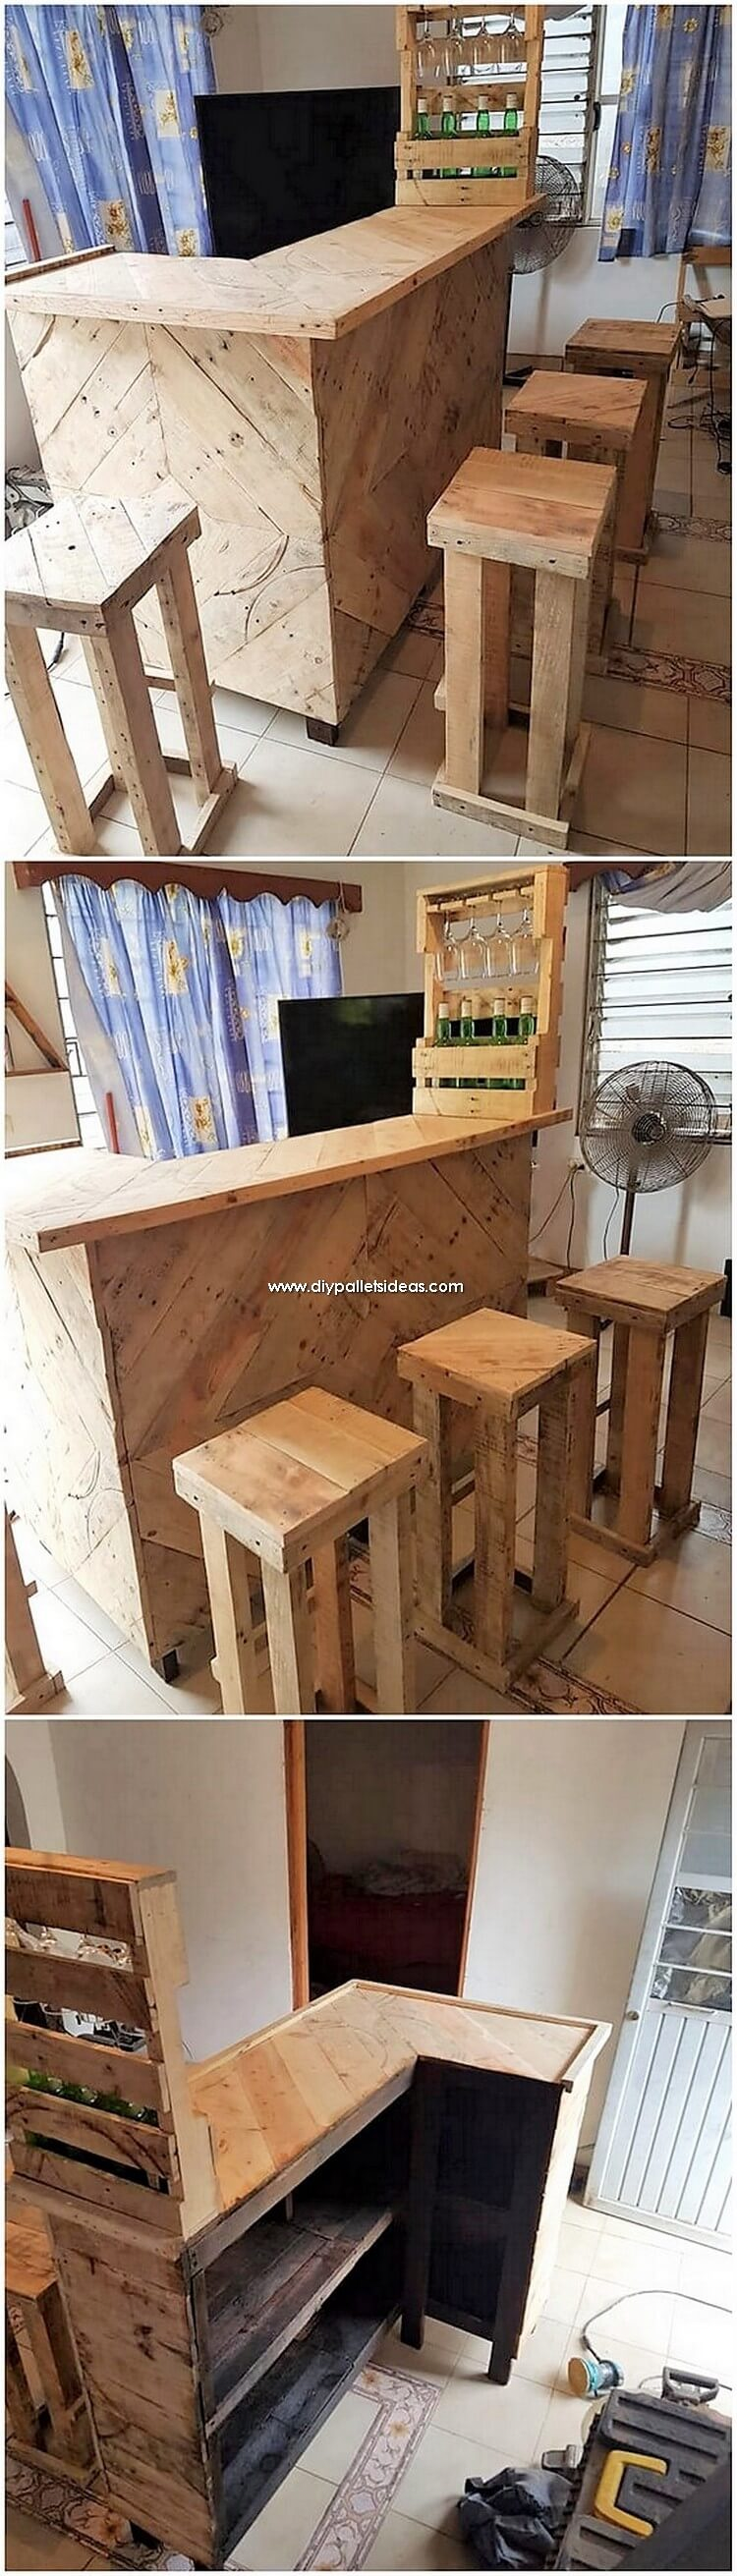 Wooden Pallet Counter Table and Stools